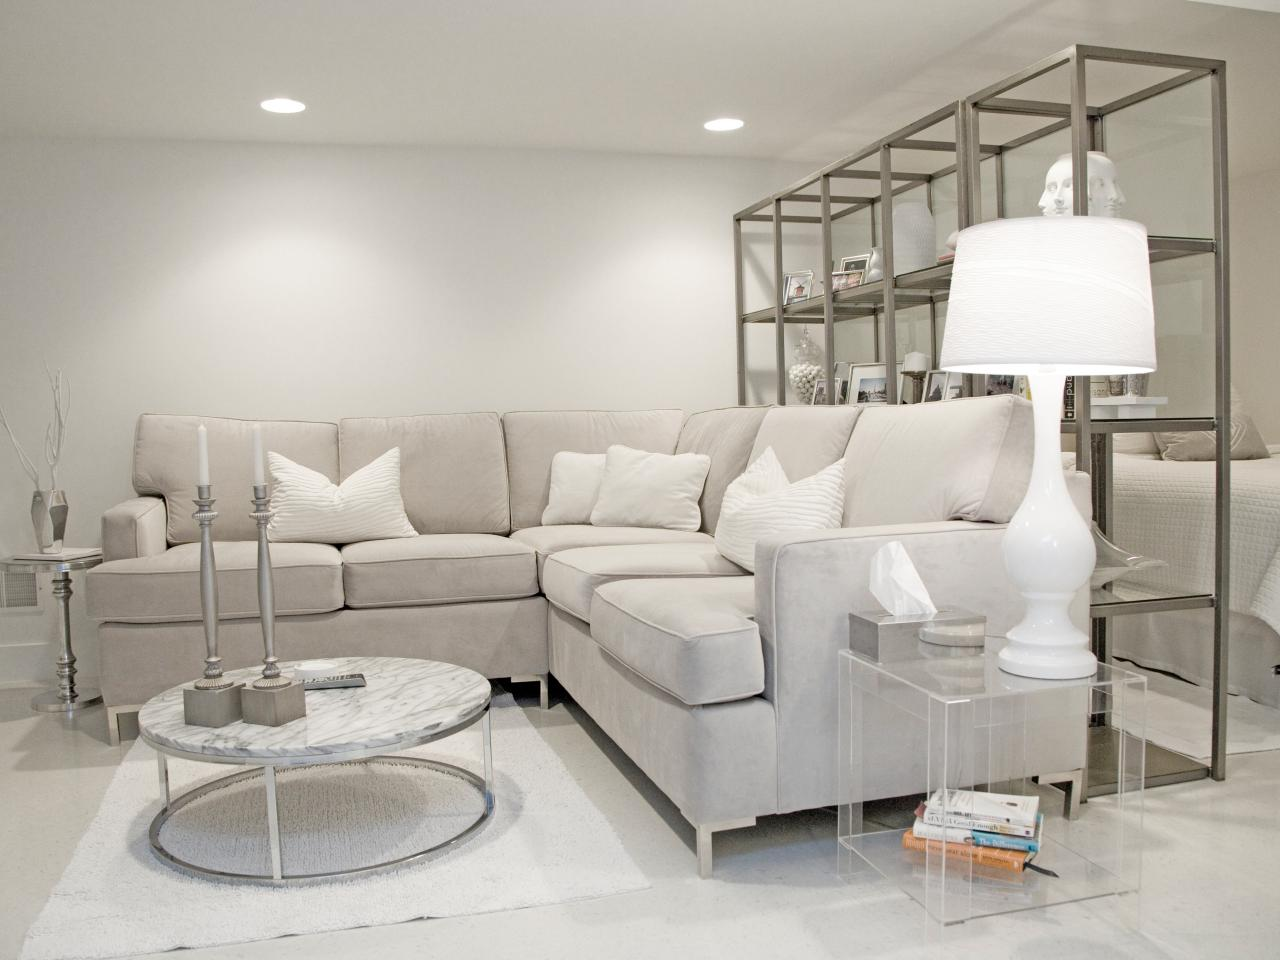 Photo page hgtv - Gray modern living room furniture ...